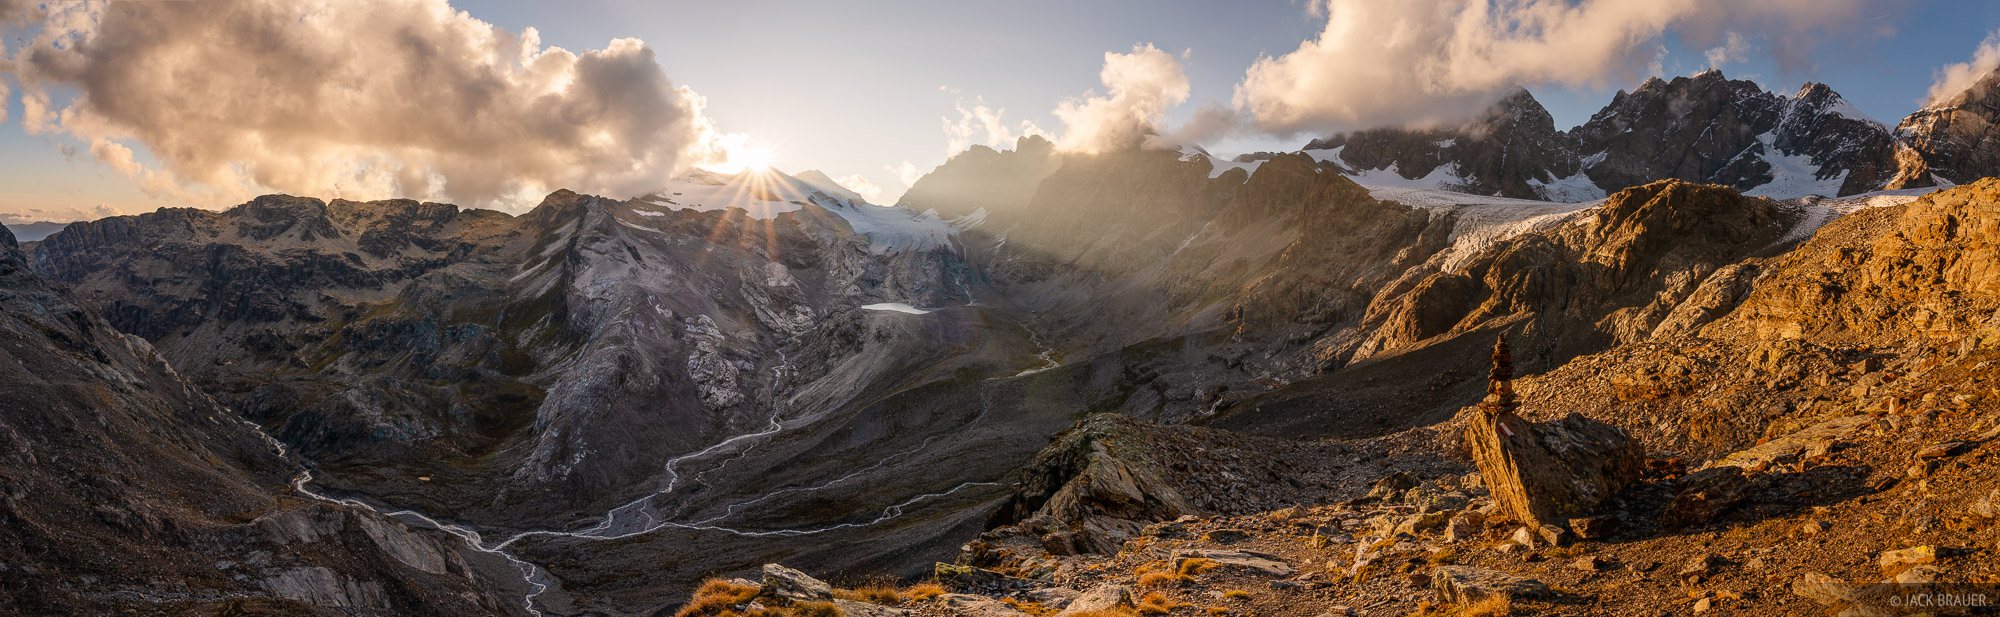 Sunset along the Italian (south) side of the Bernina Range, with Piz Scerscen at the right side.